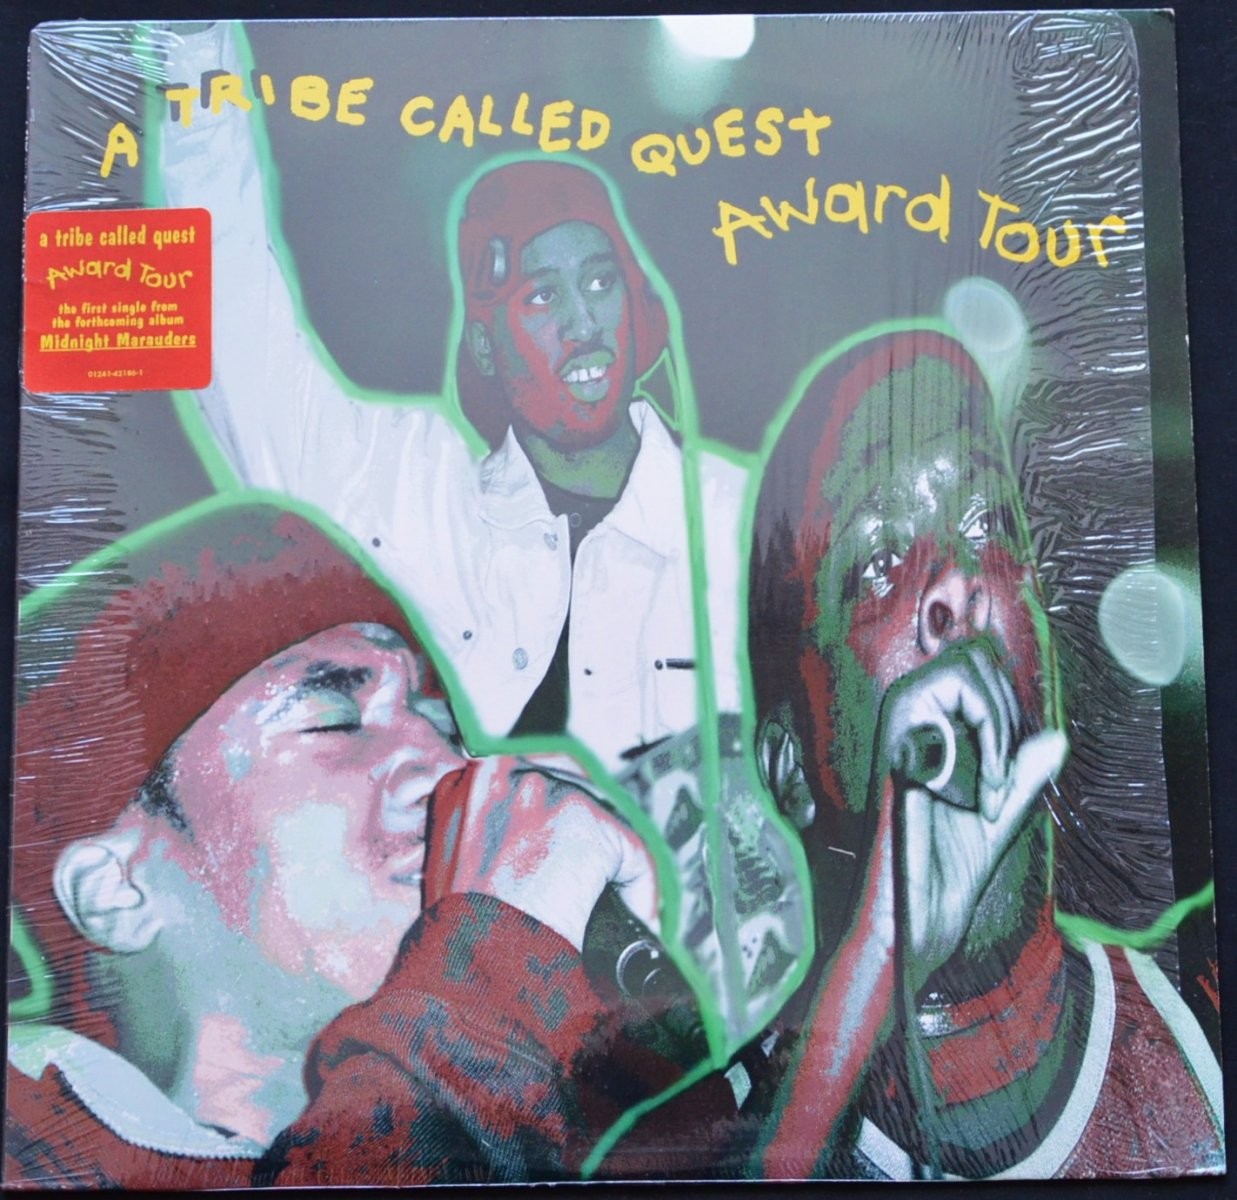 A TRIBE CALLED QUEST ‎/ AWARD TOUR / THE CHASE, PART II (12